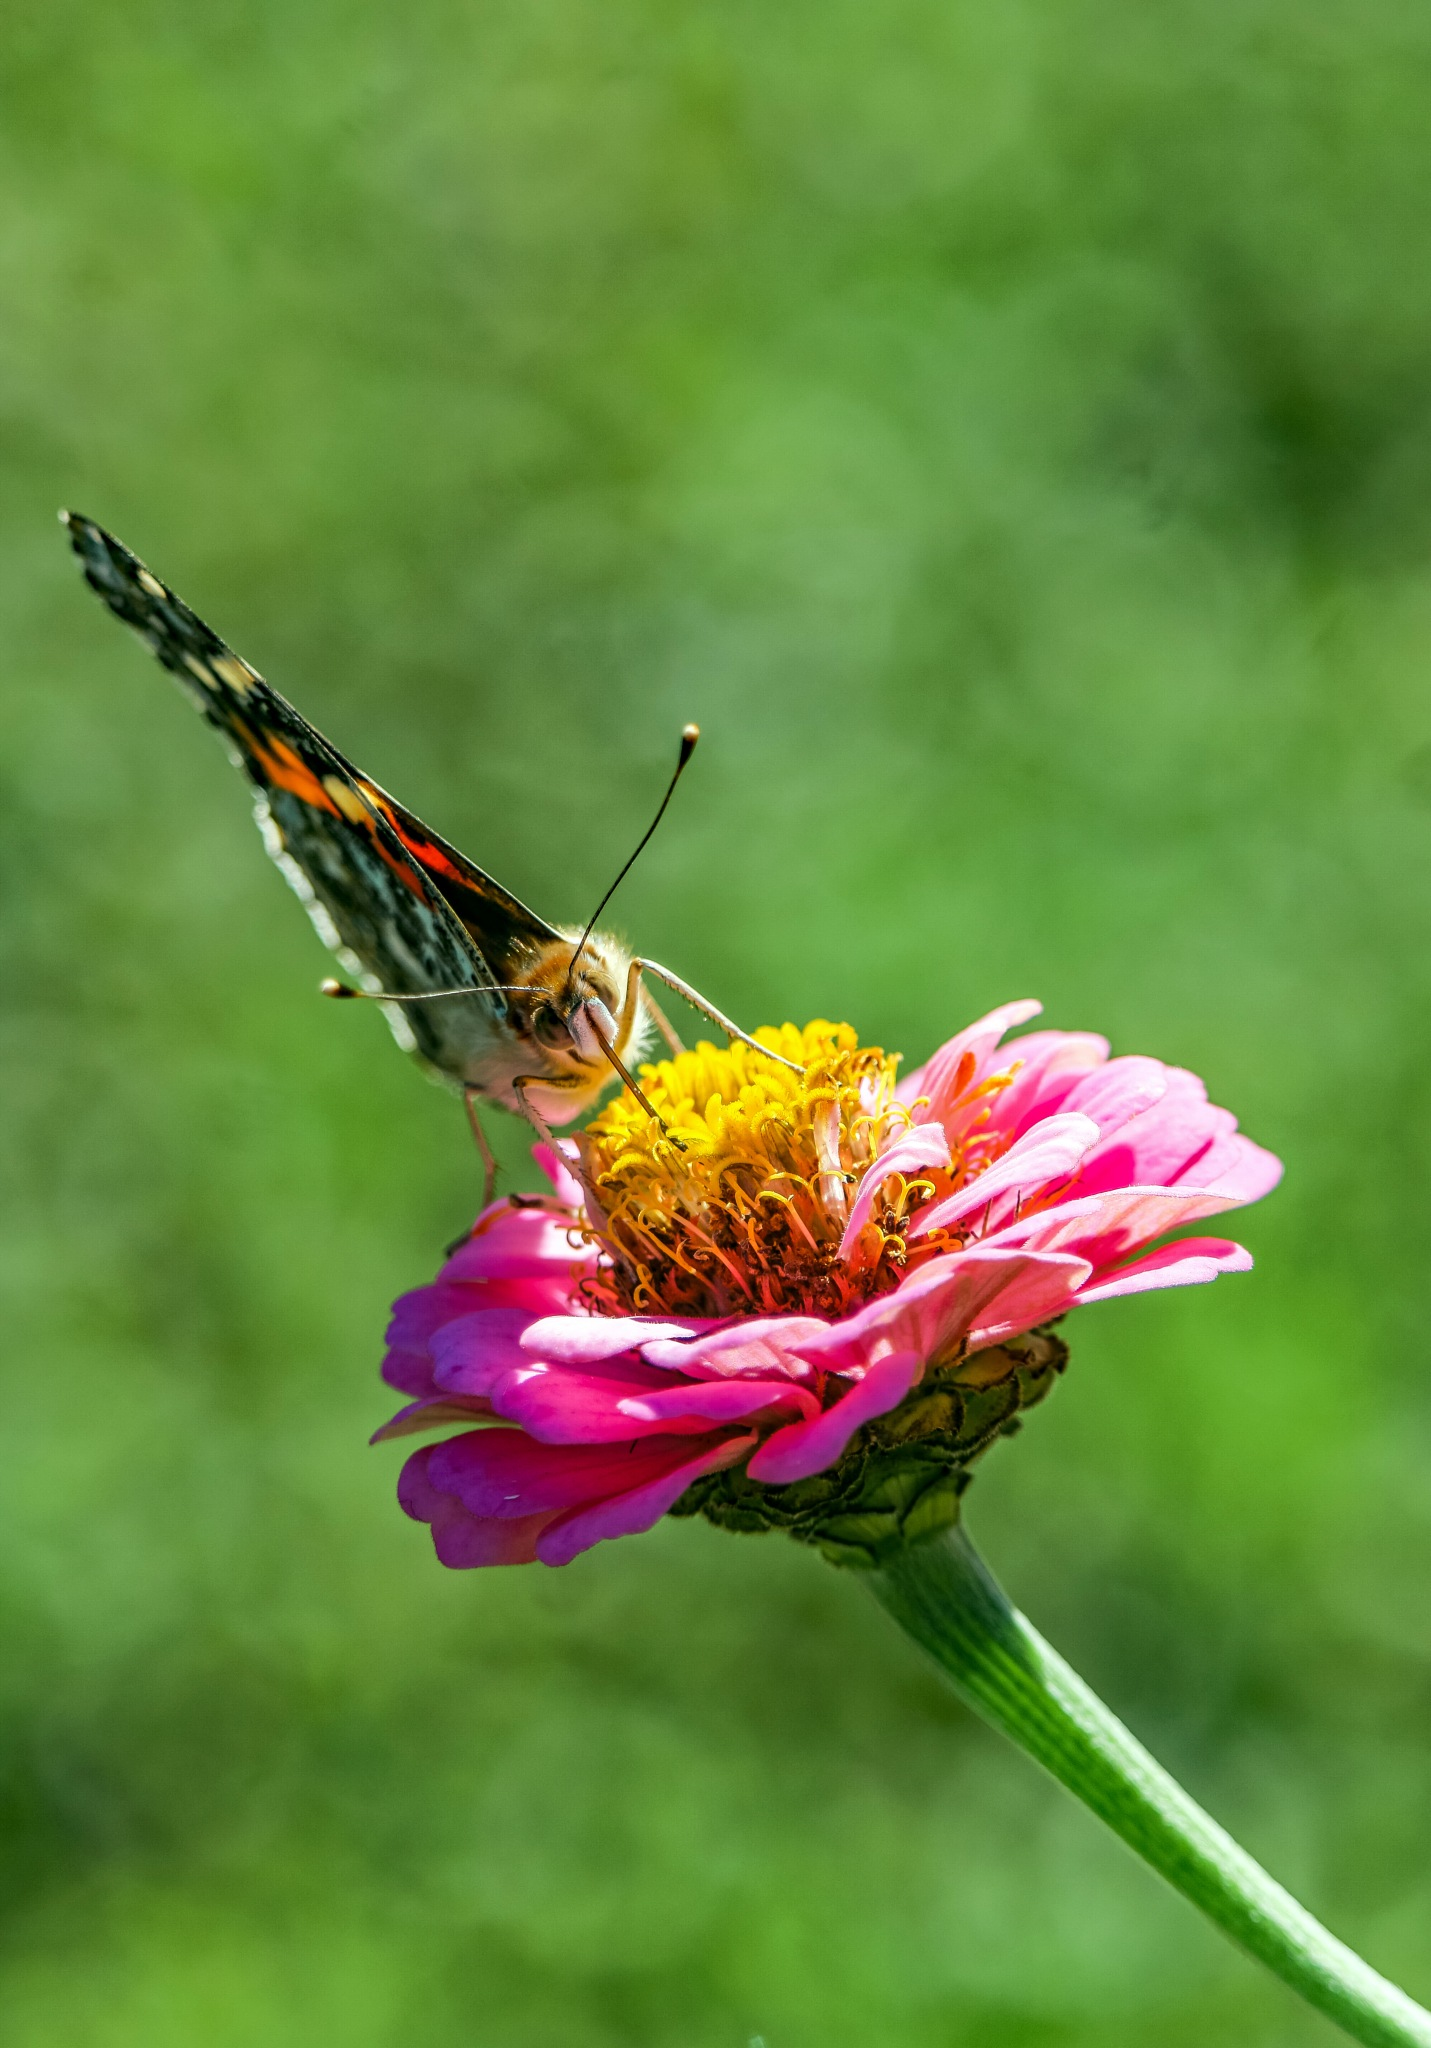 Butterfly by Mio Romanic